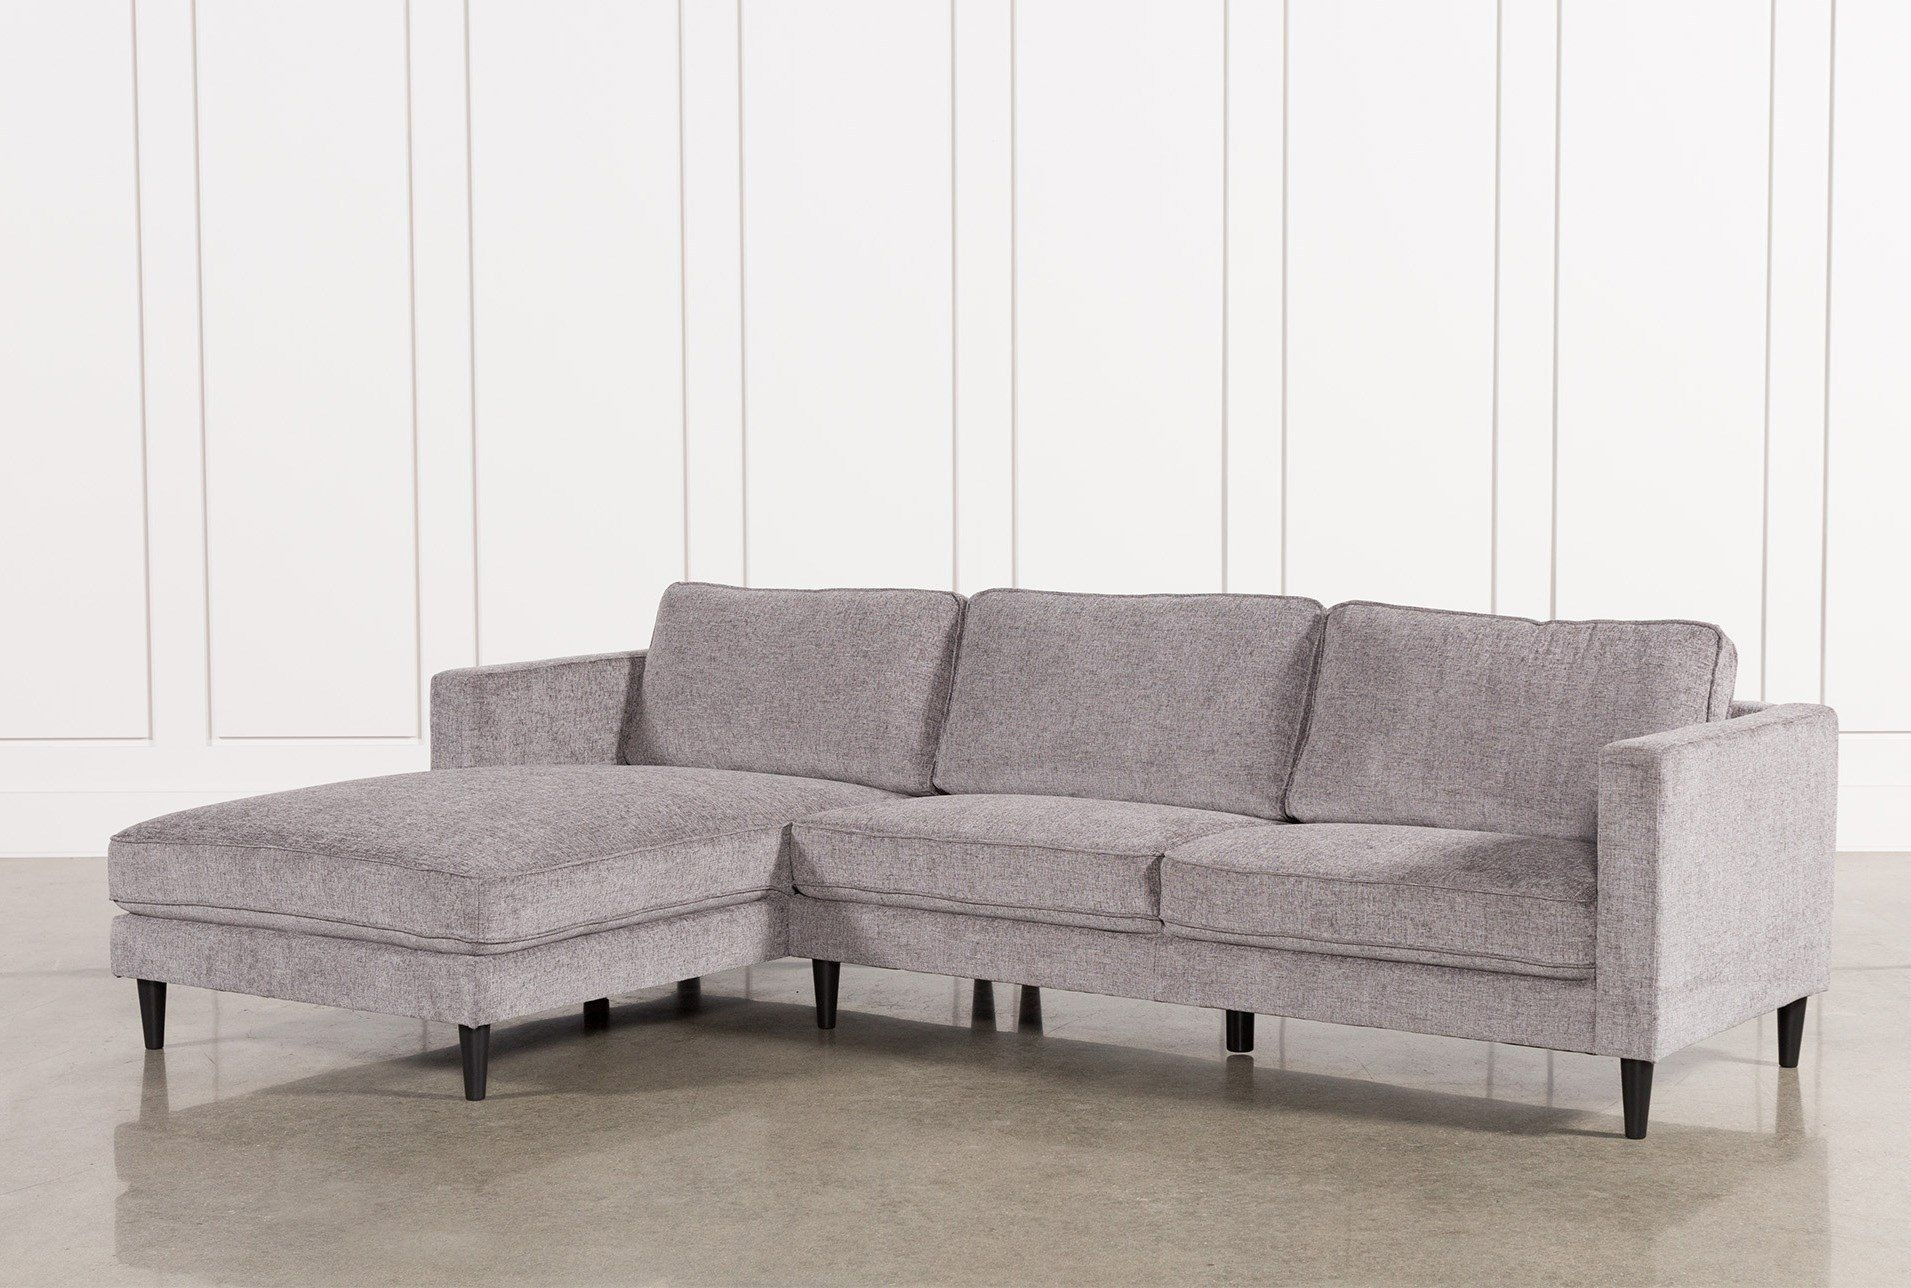 Cosmos Grey 2 Piece Sectional W/laf Chaise | Couches | Pinterest pertaining to Avery 2 Piece Sectionals With Laf Armless Chaise (Image 8 of 30)